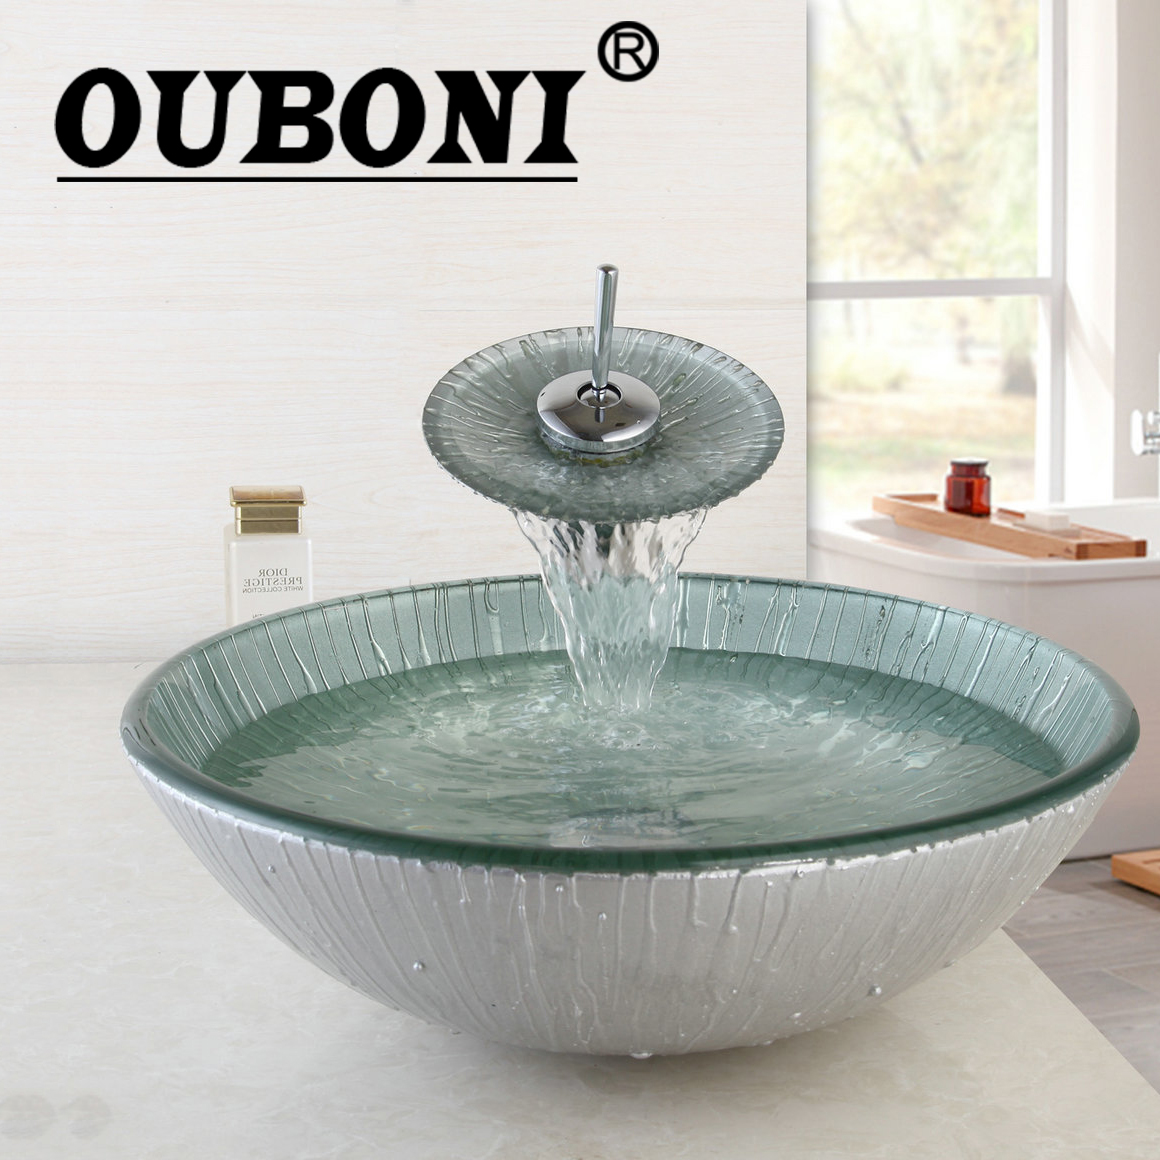 OUBONI Brand New Wash Basin Sets Bathroom Sink Set Tempered Glass Bathroom Sink And Chrome Finish Bathroom Faucet pastoralism and agriculture pennar basin india